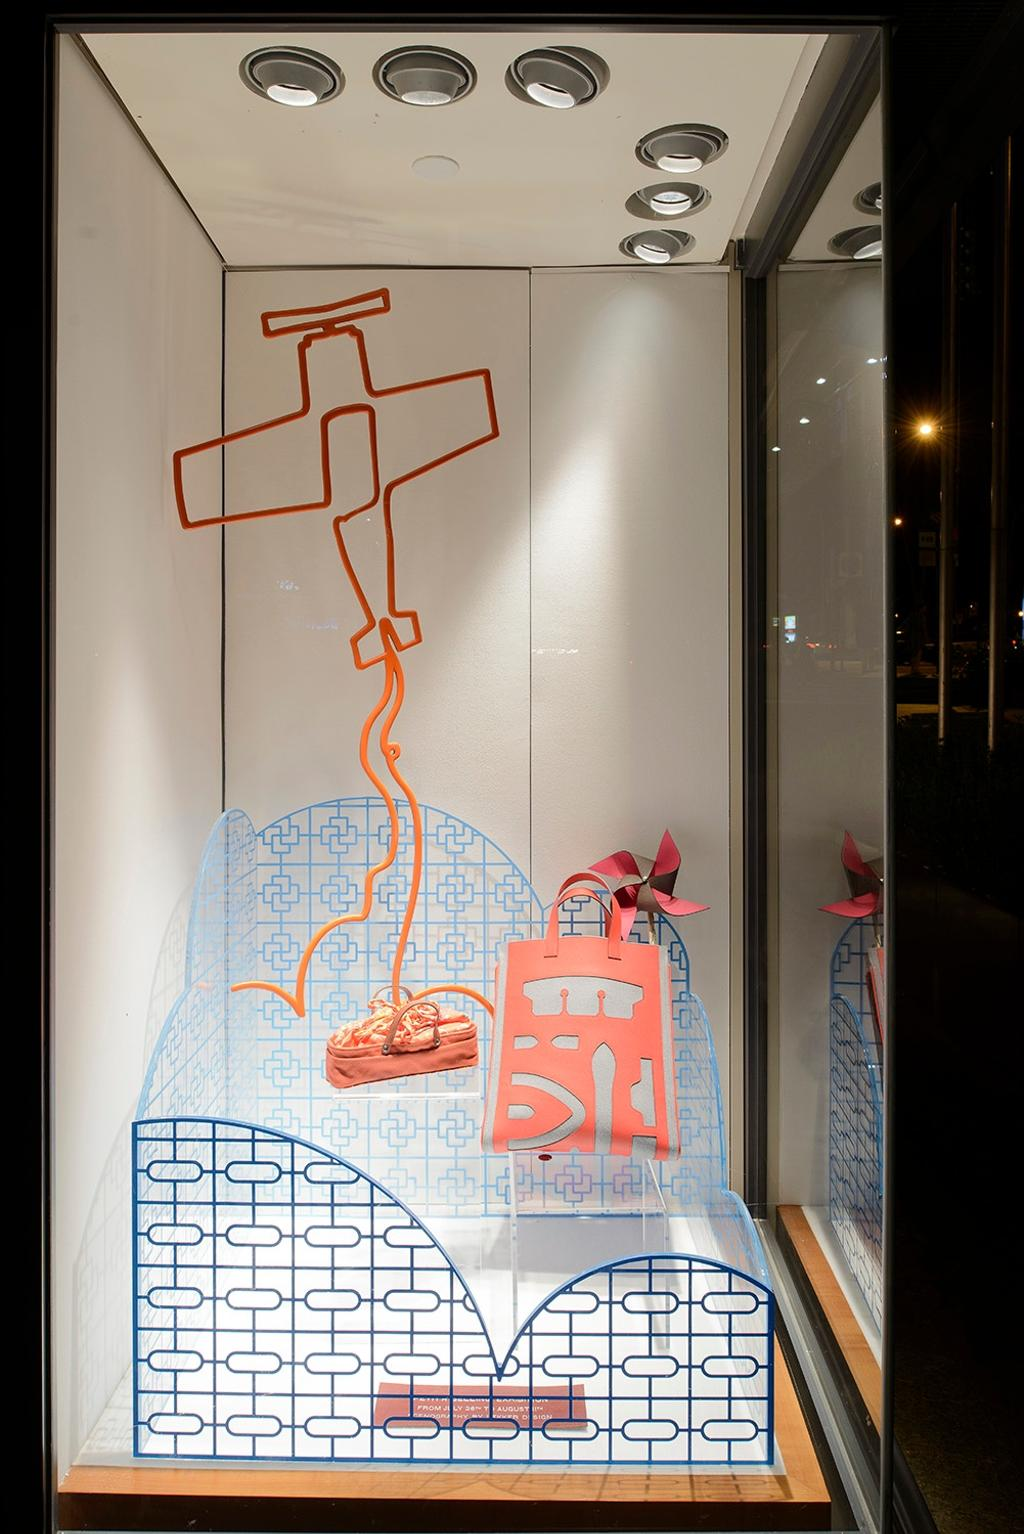 Hermes Petit H, Commercial, Architect, Lekker Architects, Contemporary, Recessed Lighting, Recessed Lights, Display Showcase, Paper